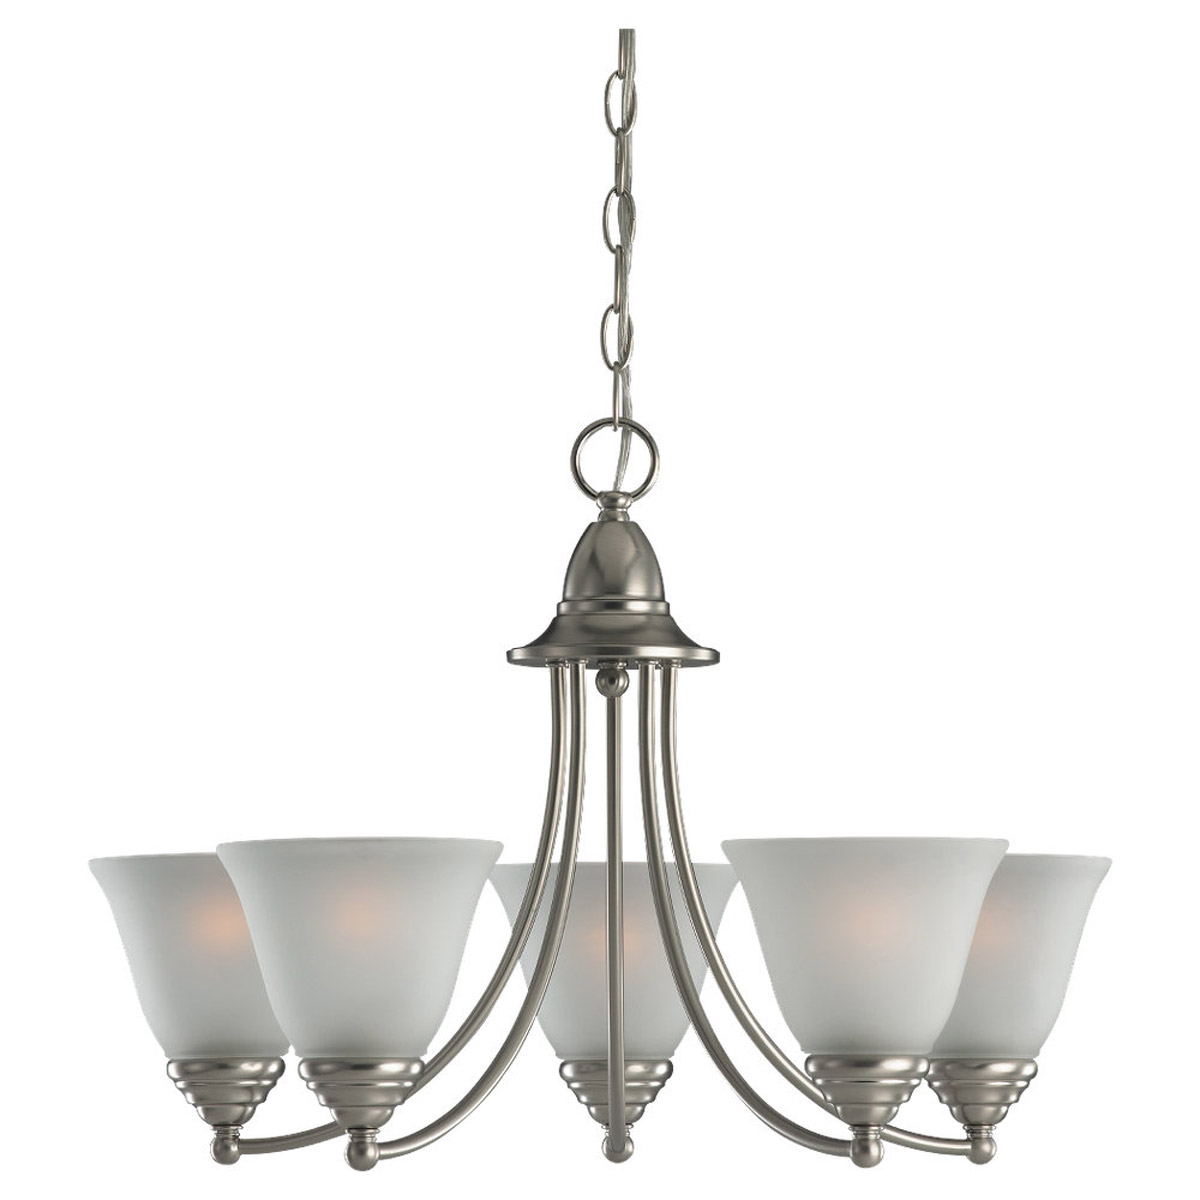 Sea Gull Lighting Albany 5 Light Chandelier in Brushed Nickel 31576-962